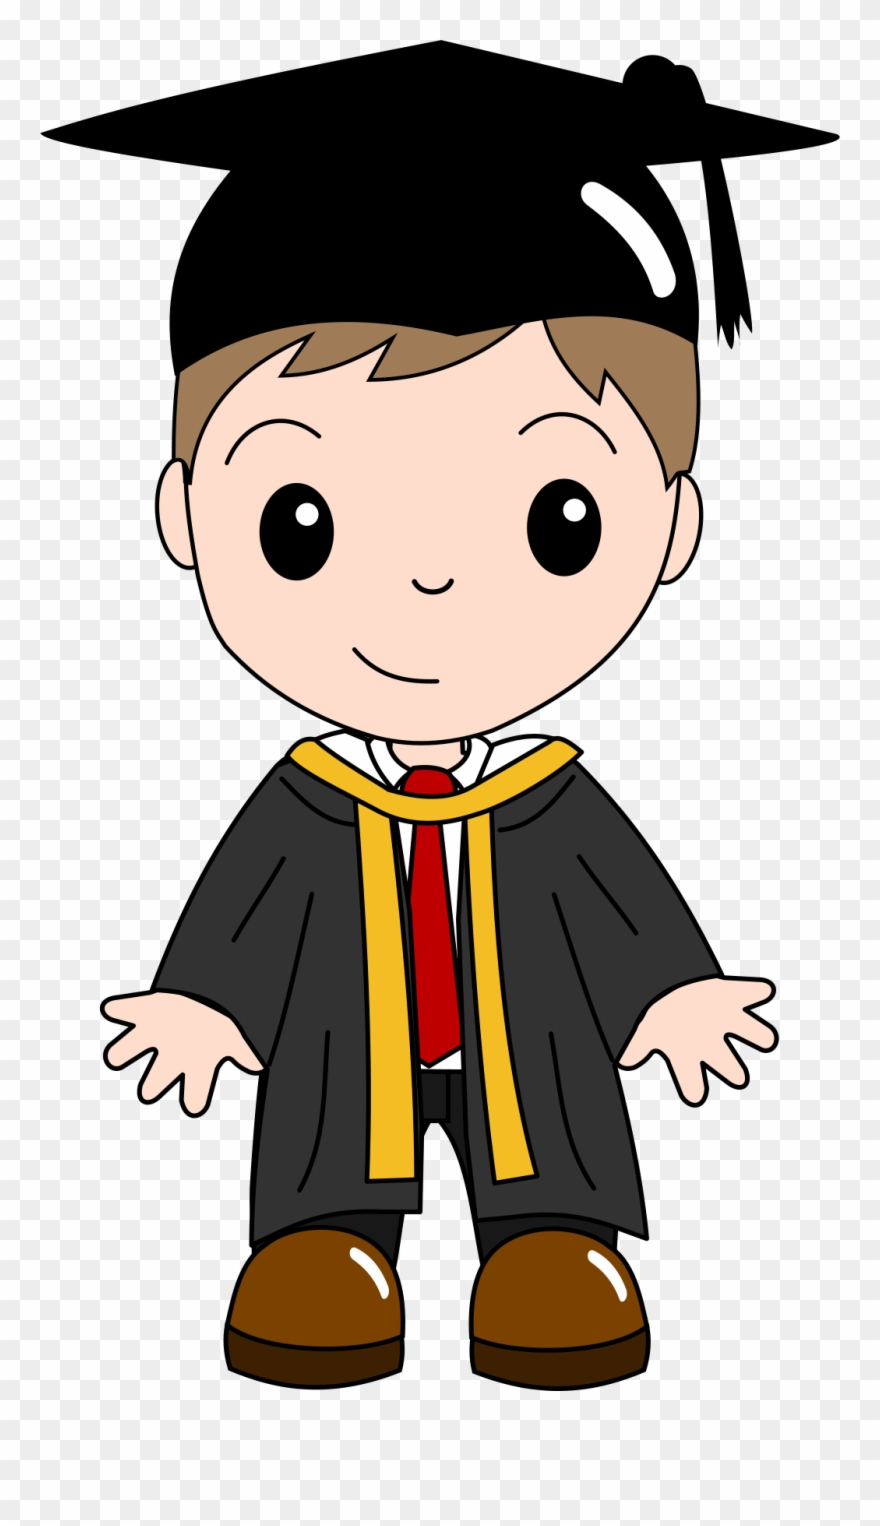 Graduation Ceremony Cartoon Clip.